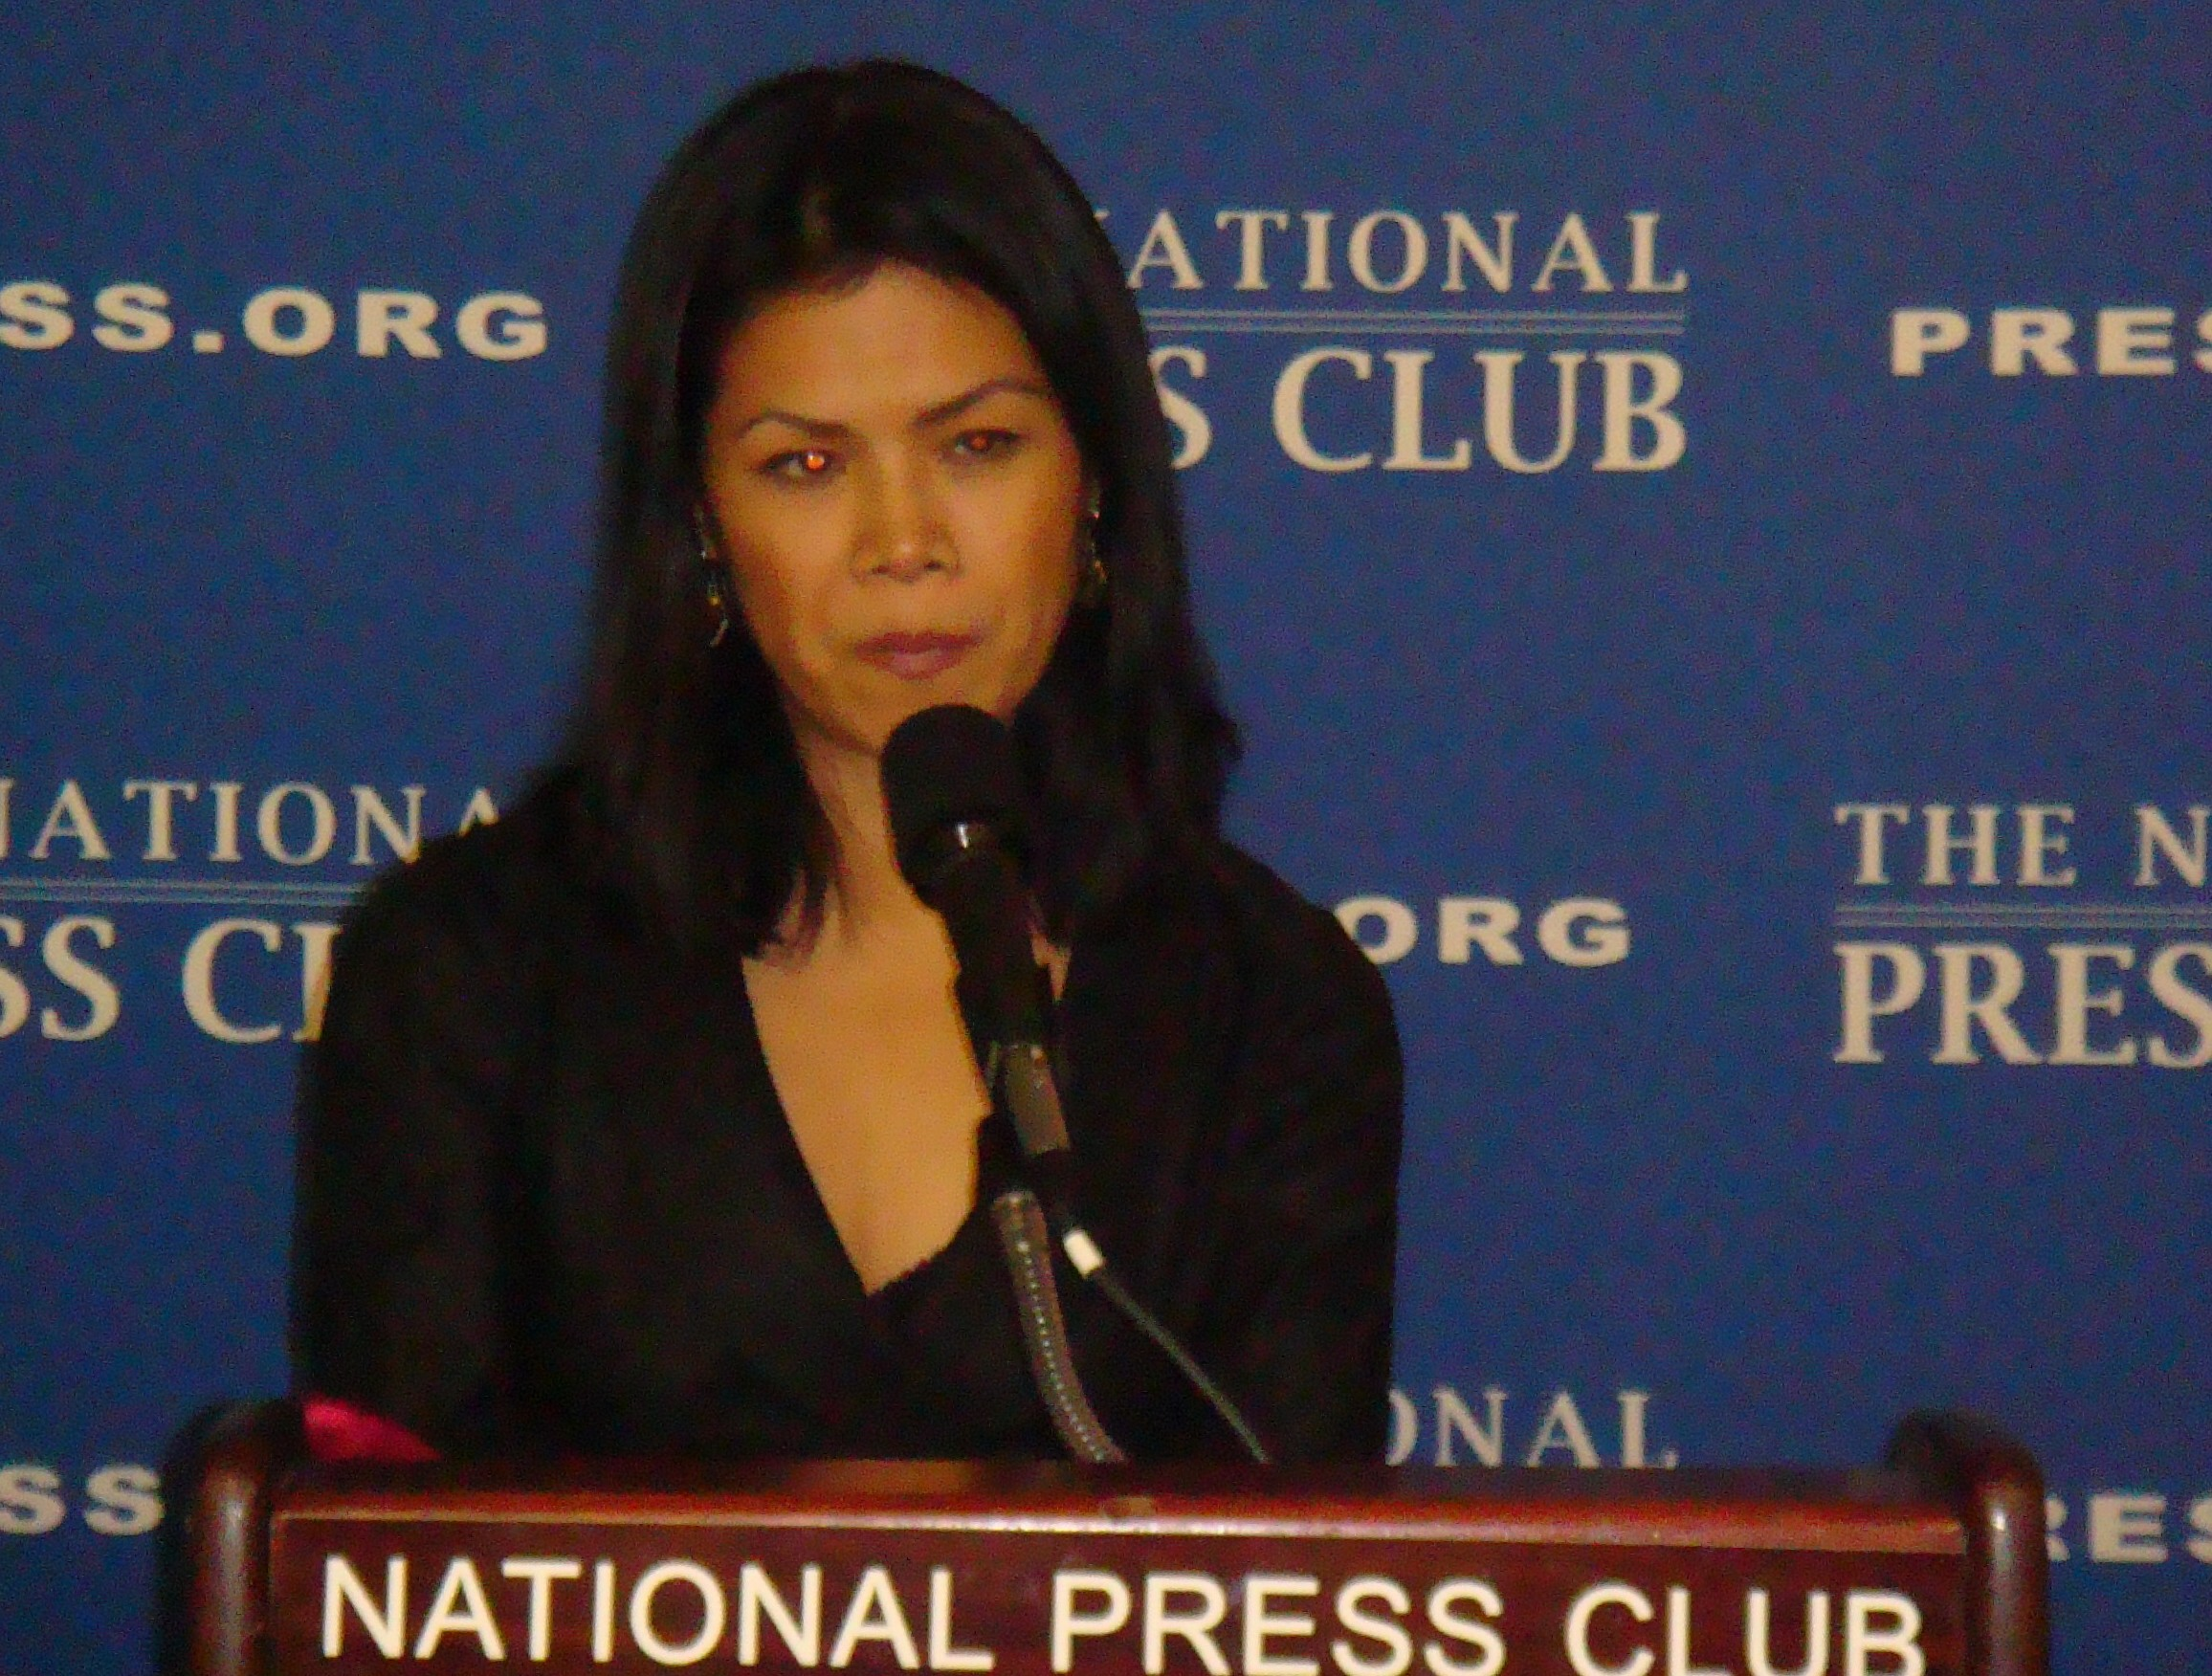 Newsmaker Theary Seng at the National Press Club, Wash. DC, March 2010